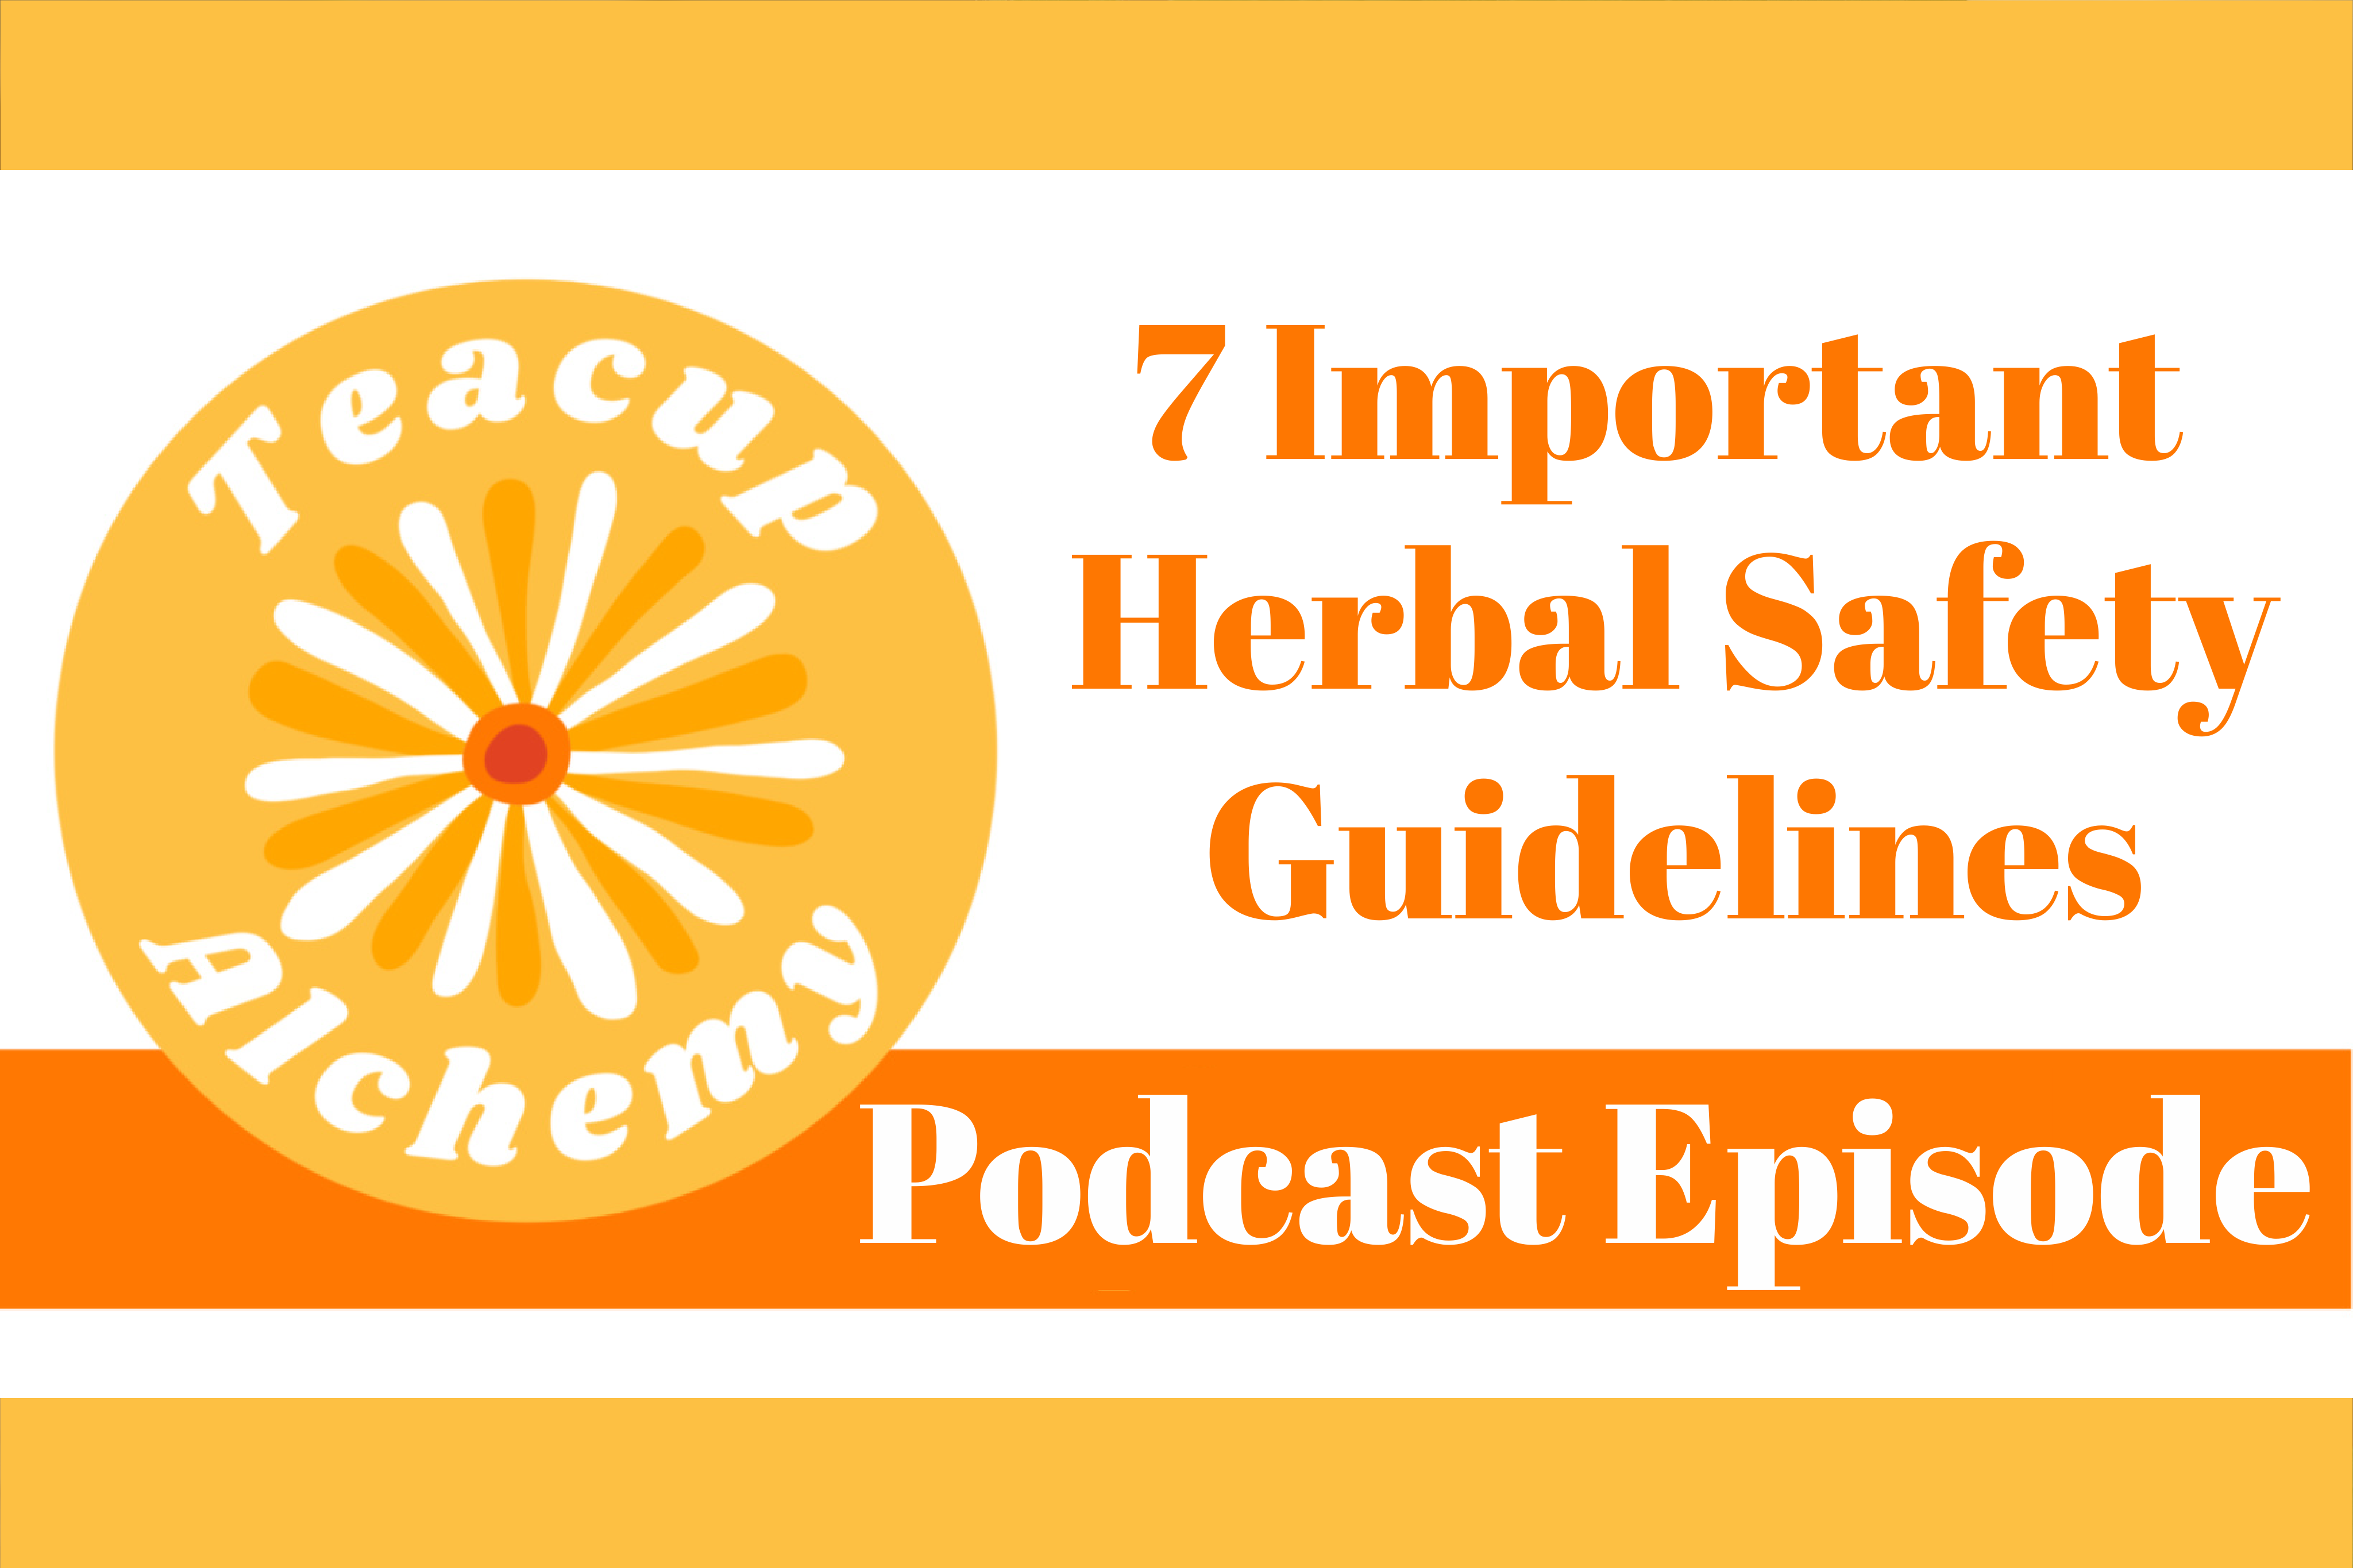 7 Important Herbal Safety Guidelines